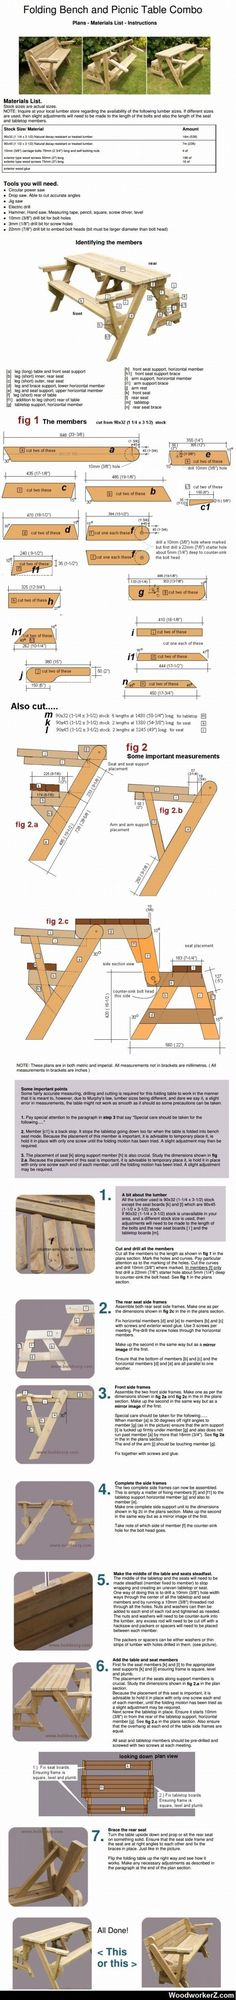 Nifty Folding Bench and Picnic Table Combo Infographic | Tiny Homes